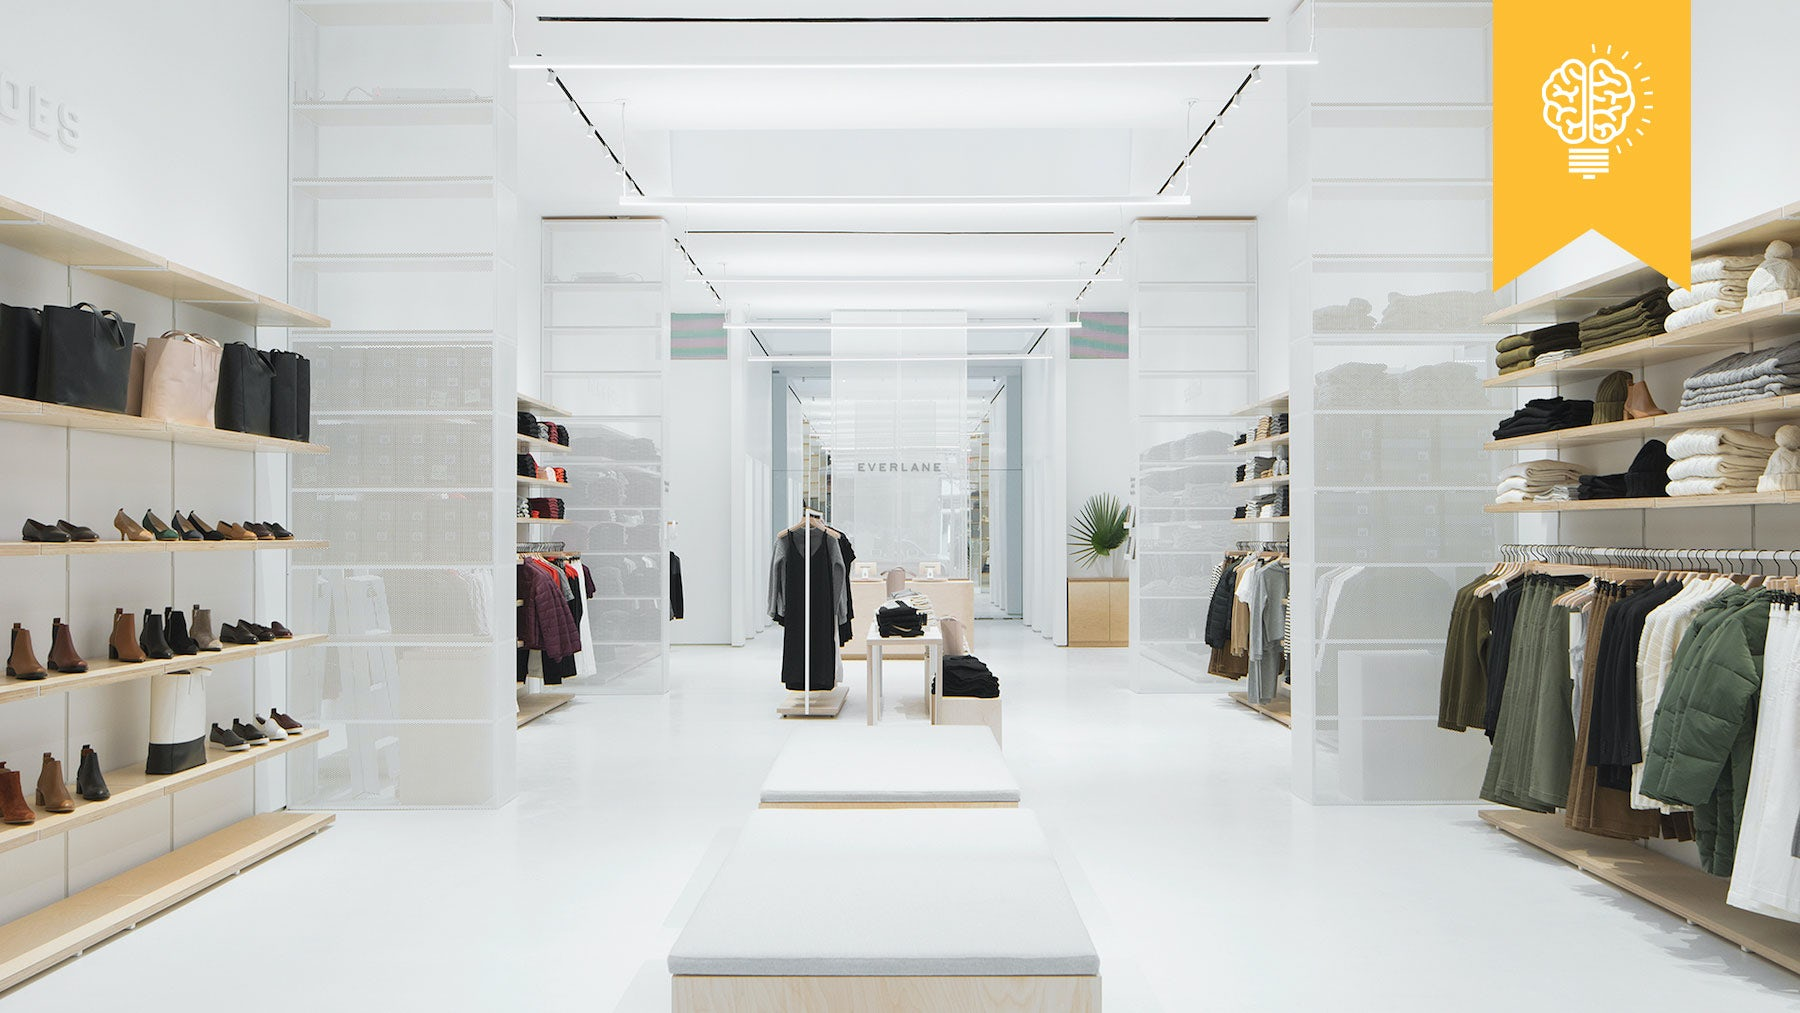 Everlane's Five Tactics for Winning at Physical Retail